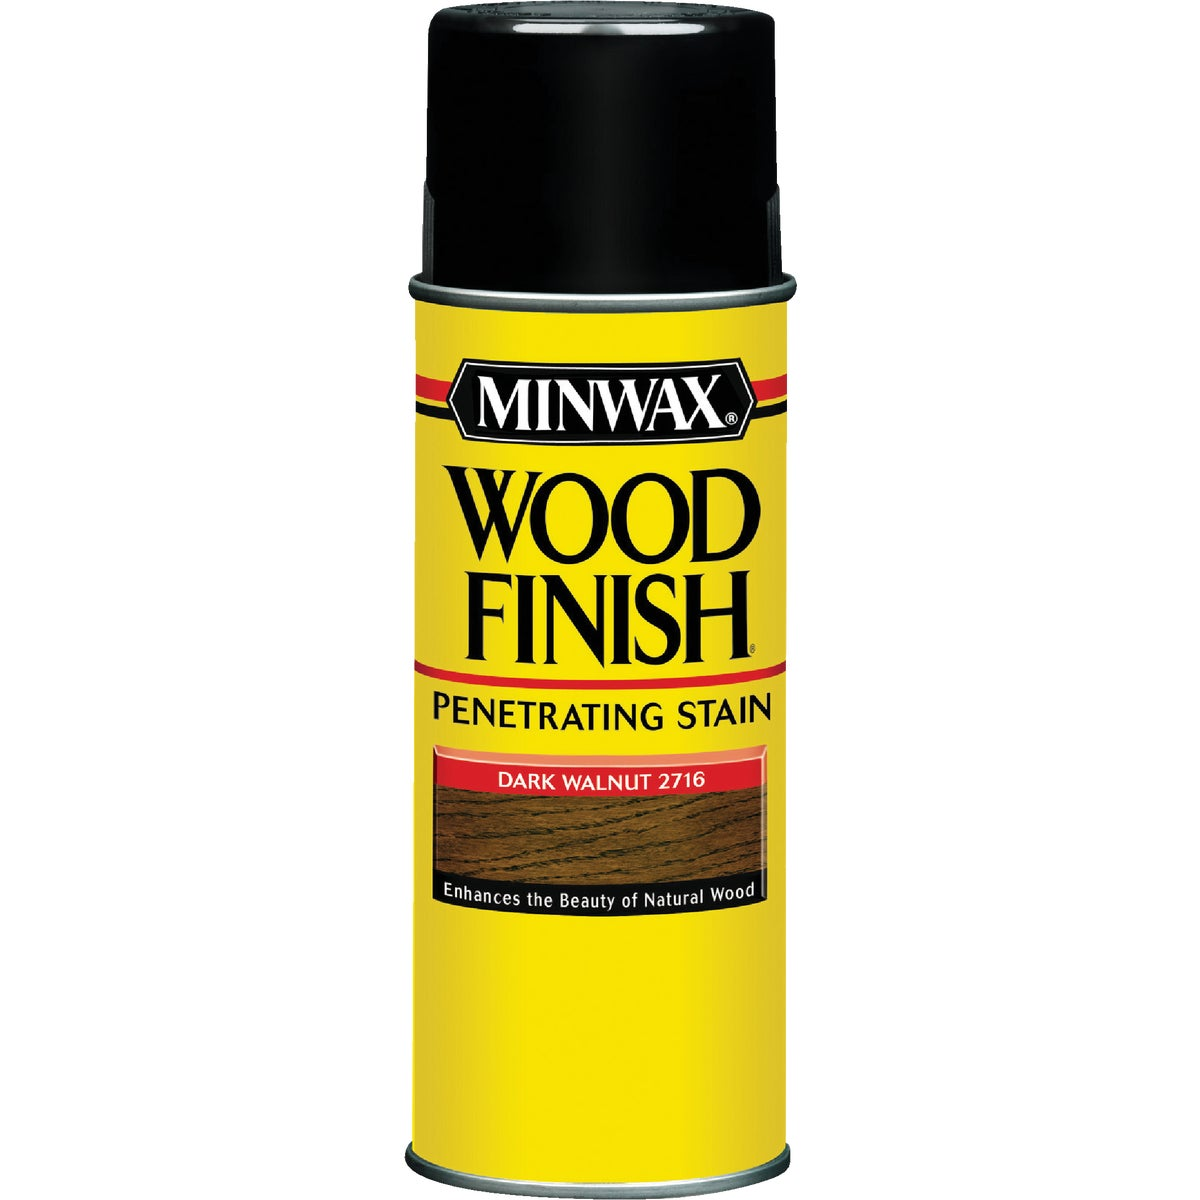 DARK WALNUT SPRAY STAIN - 32716 by Minwax Company